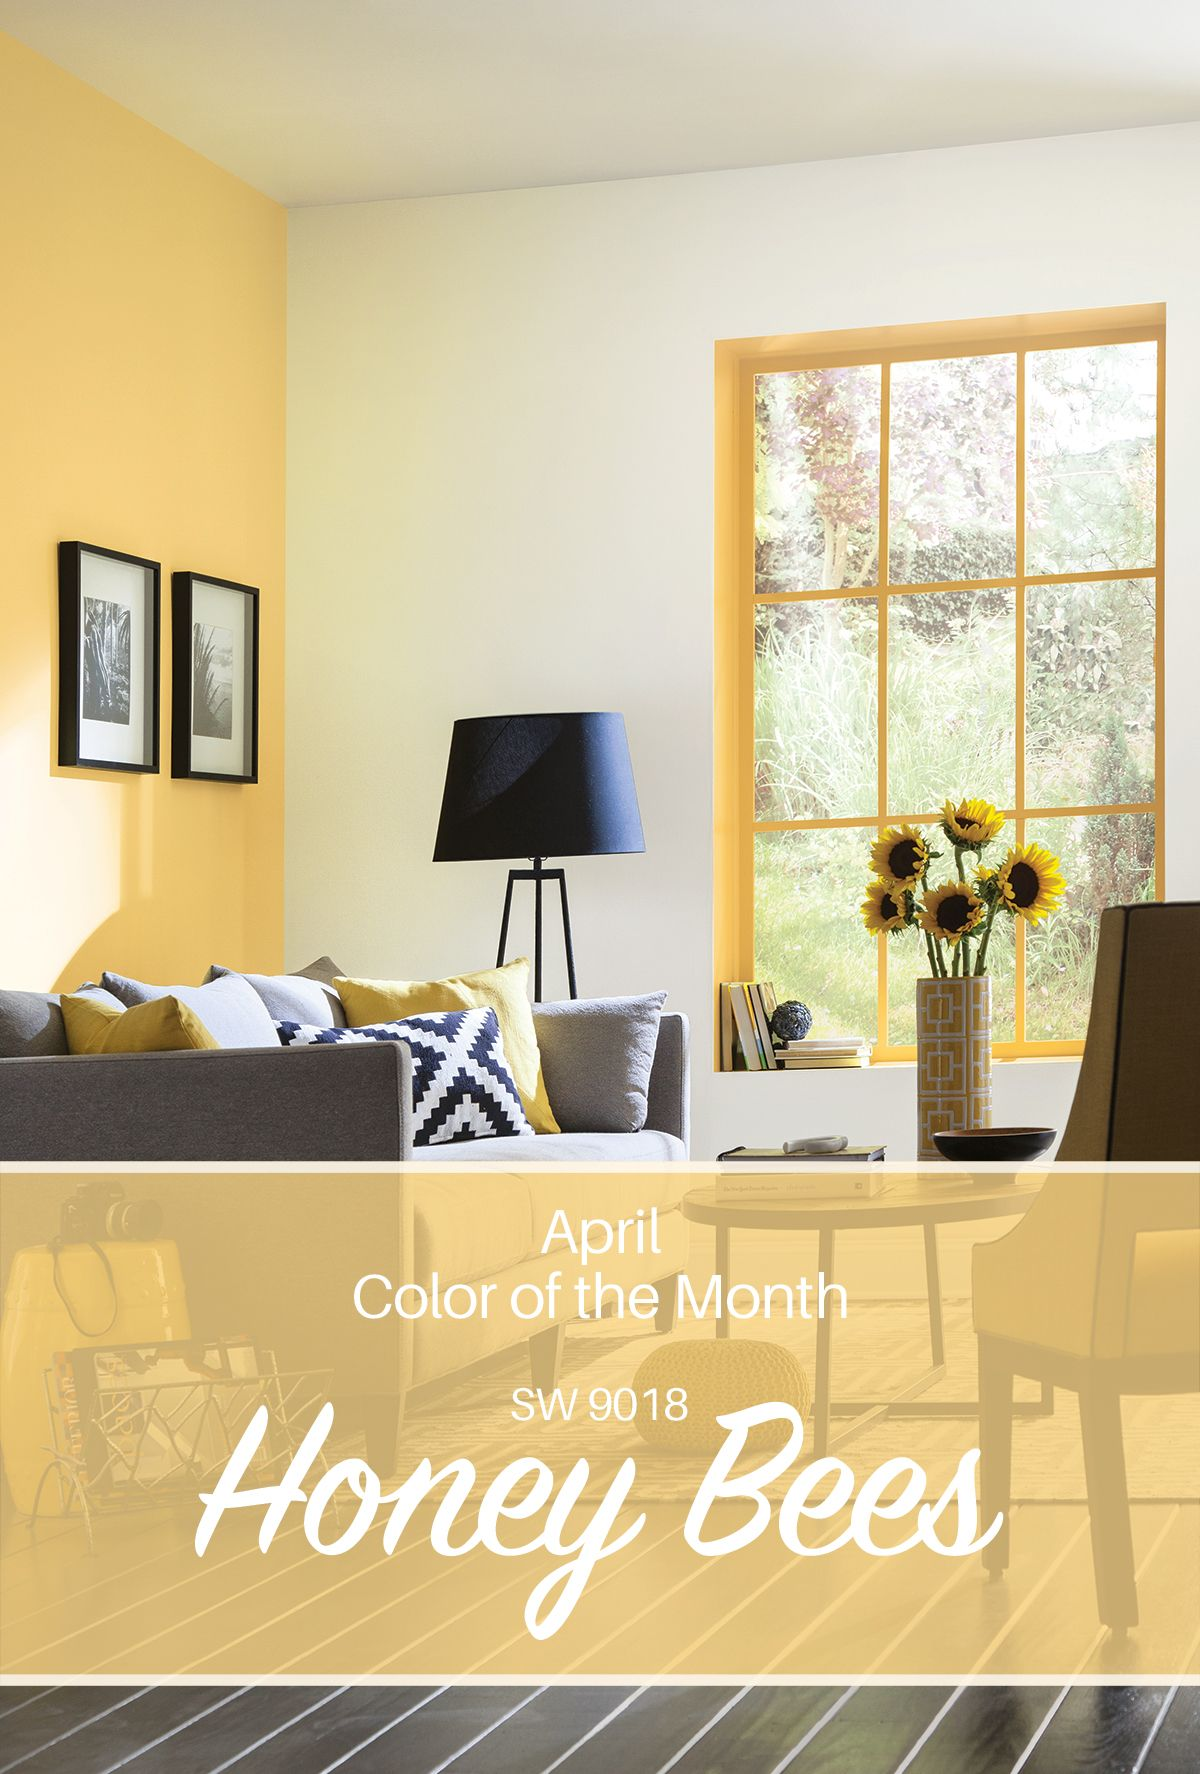 Ombre technique supplies and tips from sherwin williams - Sherwin Williams April Color Of The Month Honey Bees Sw 9018